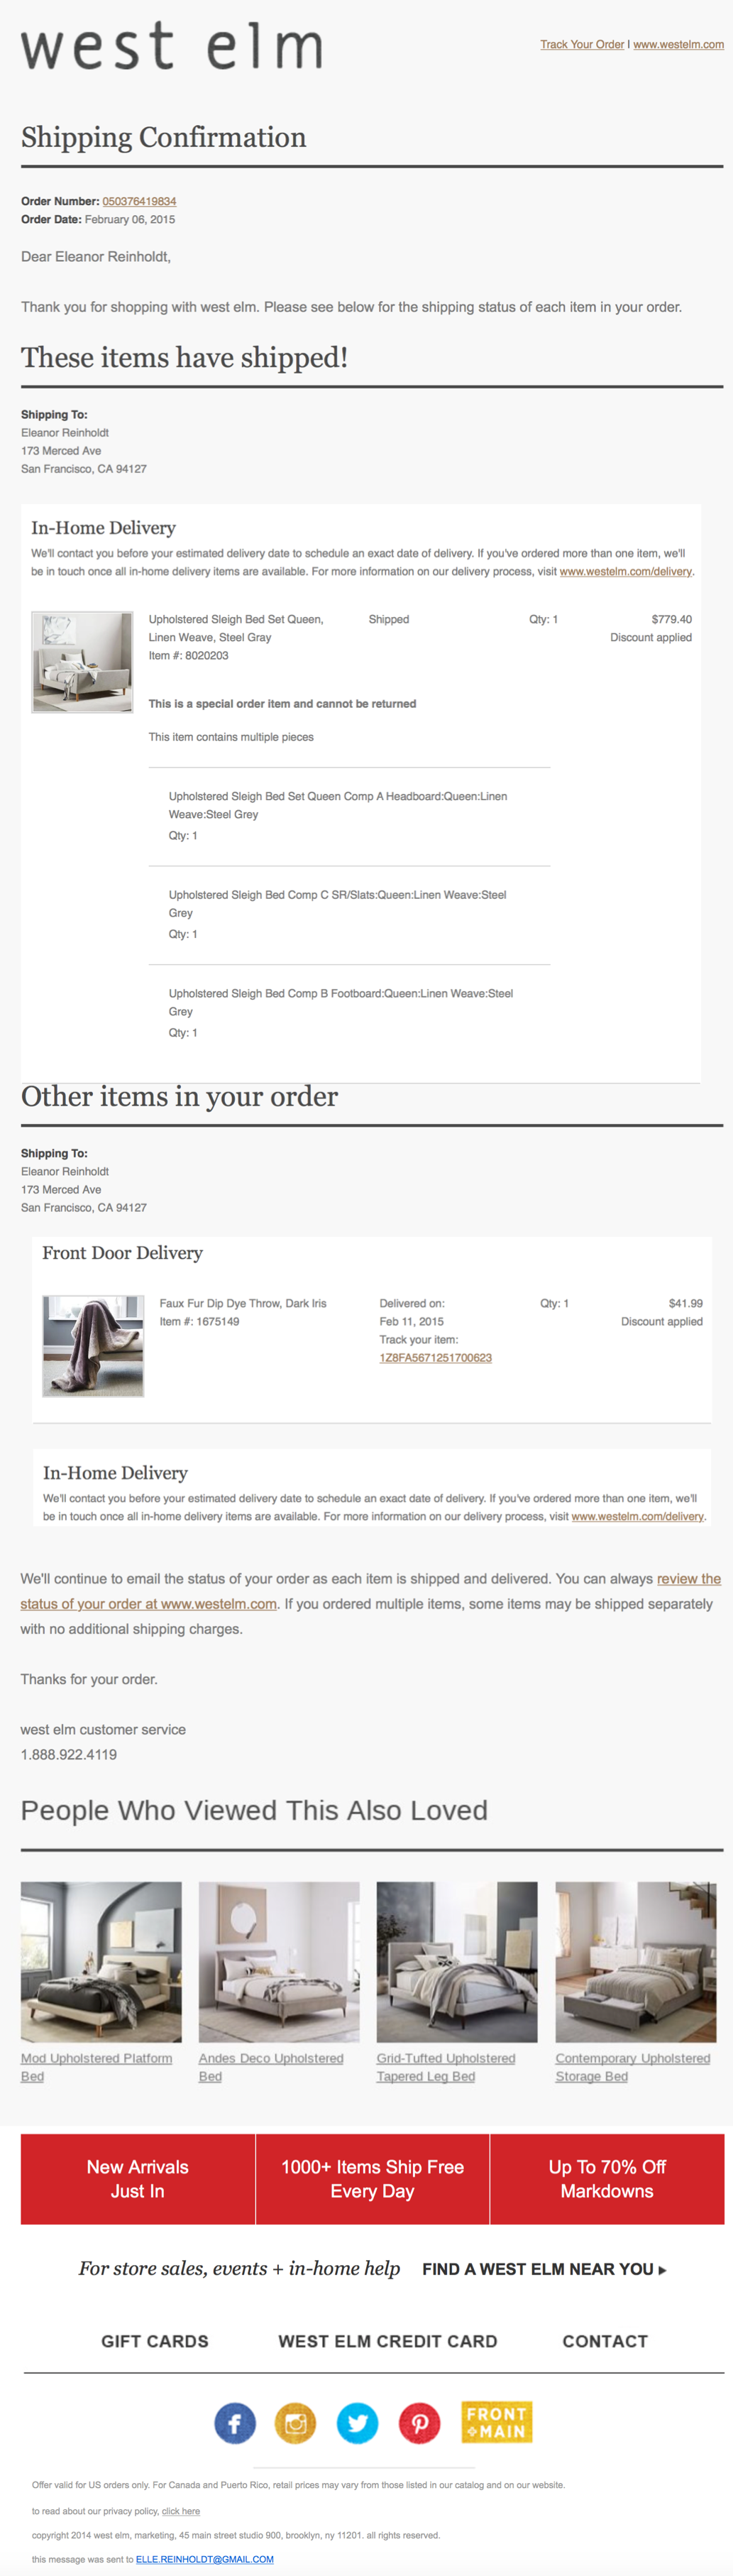 West Elm Higher Res Shipping Confirmation.png